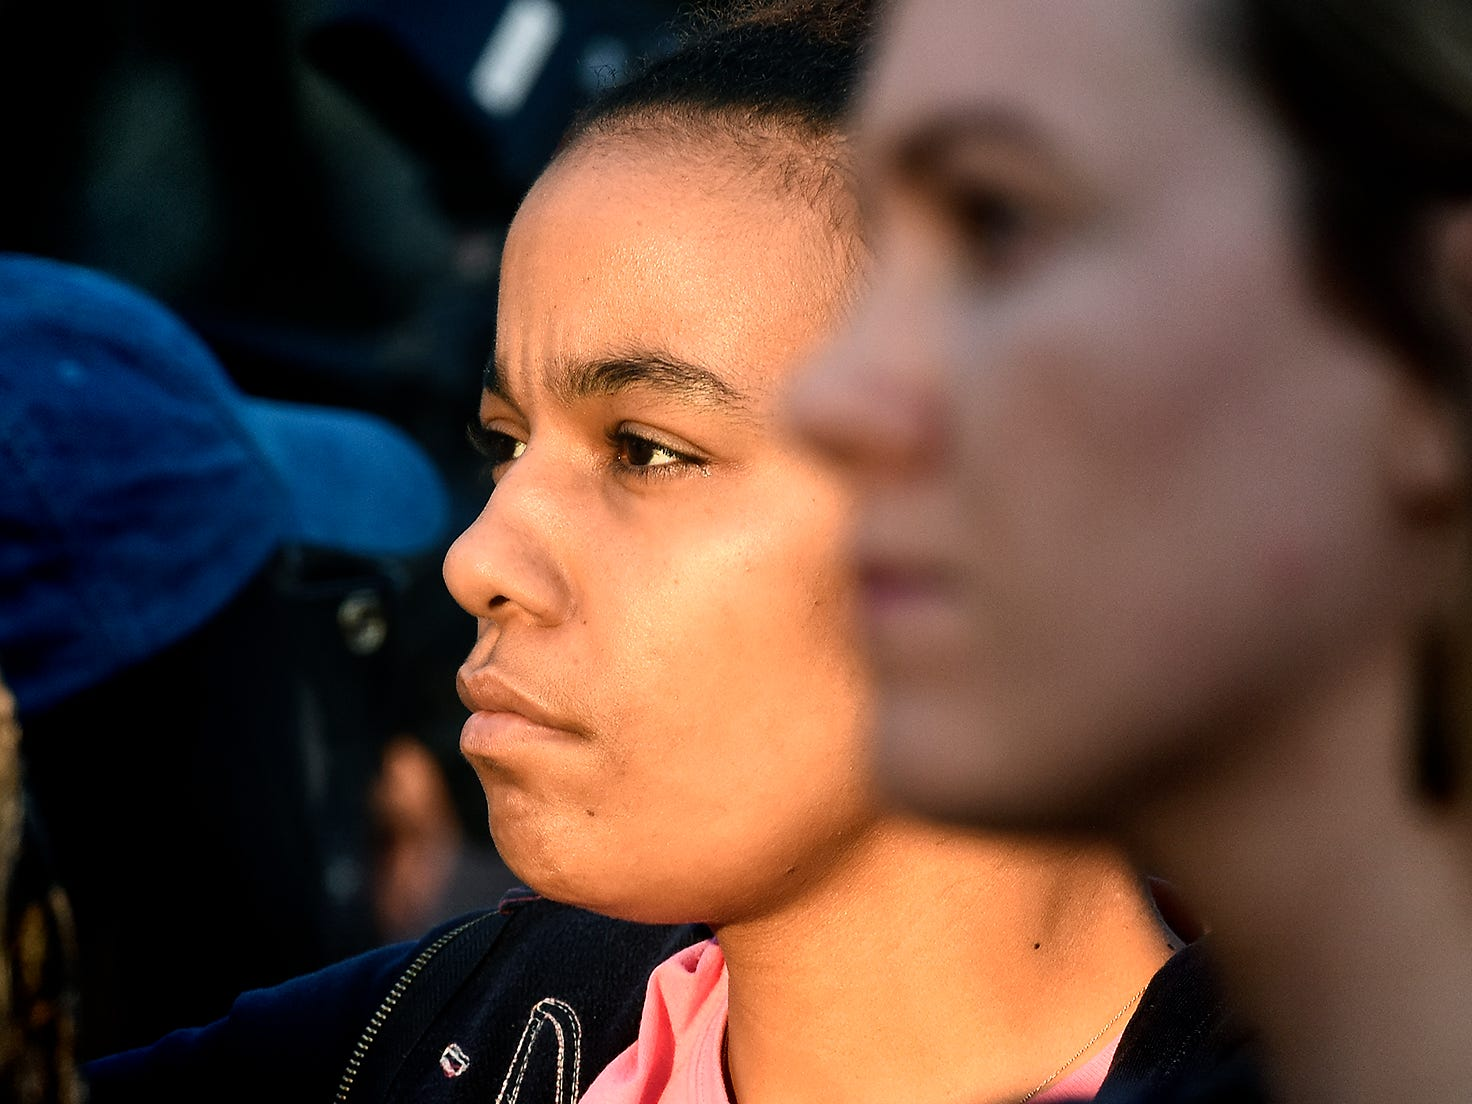 Ty Clark of York City listens to speakers during a gathering  at the Colonial Courthouse during the 33rd annual Crime Victims' Rights March and Candlelight Vigil Tuesday, April 9, 2019. Participants gathered at the courthouse for a presentation before marching to Trinity United Church of Christ for a ceremony and candlelight vigil. The York County Victims' Rights Coalition sponsored the event. Bill Kalina photo